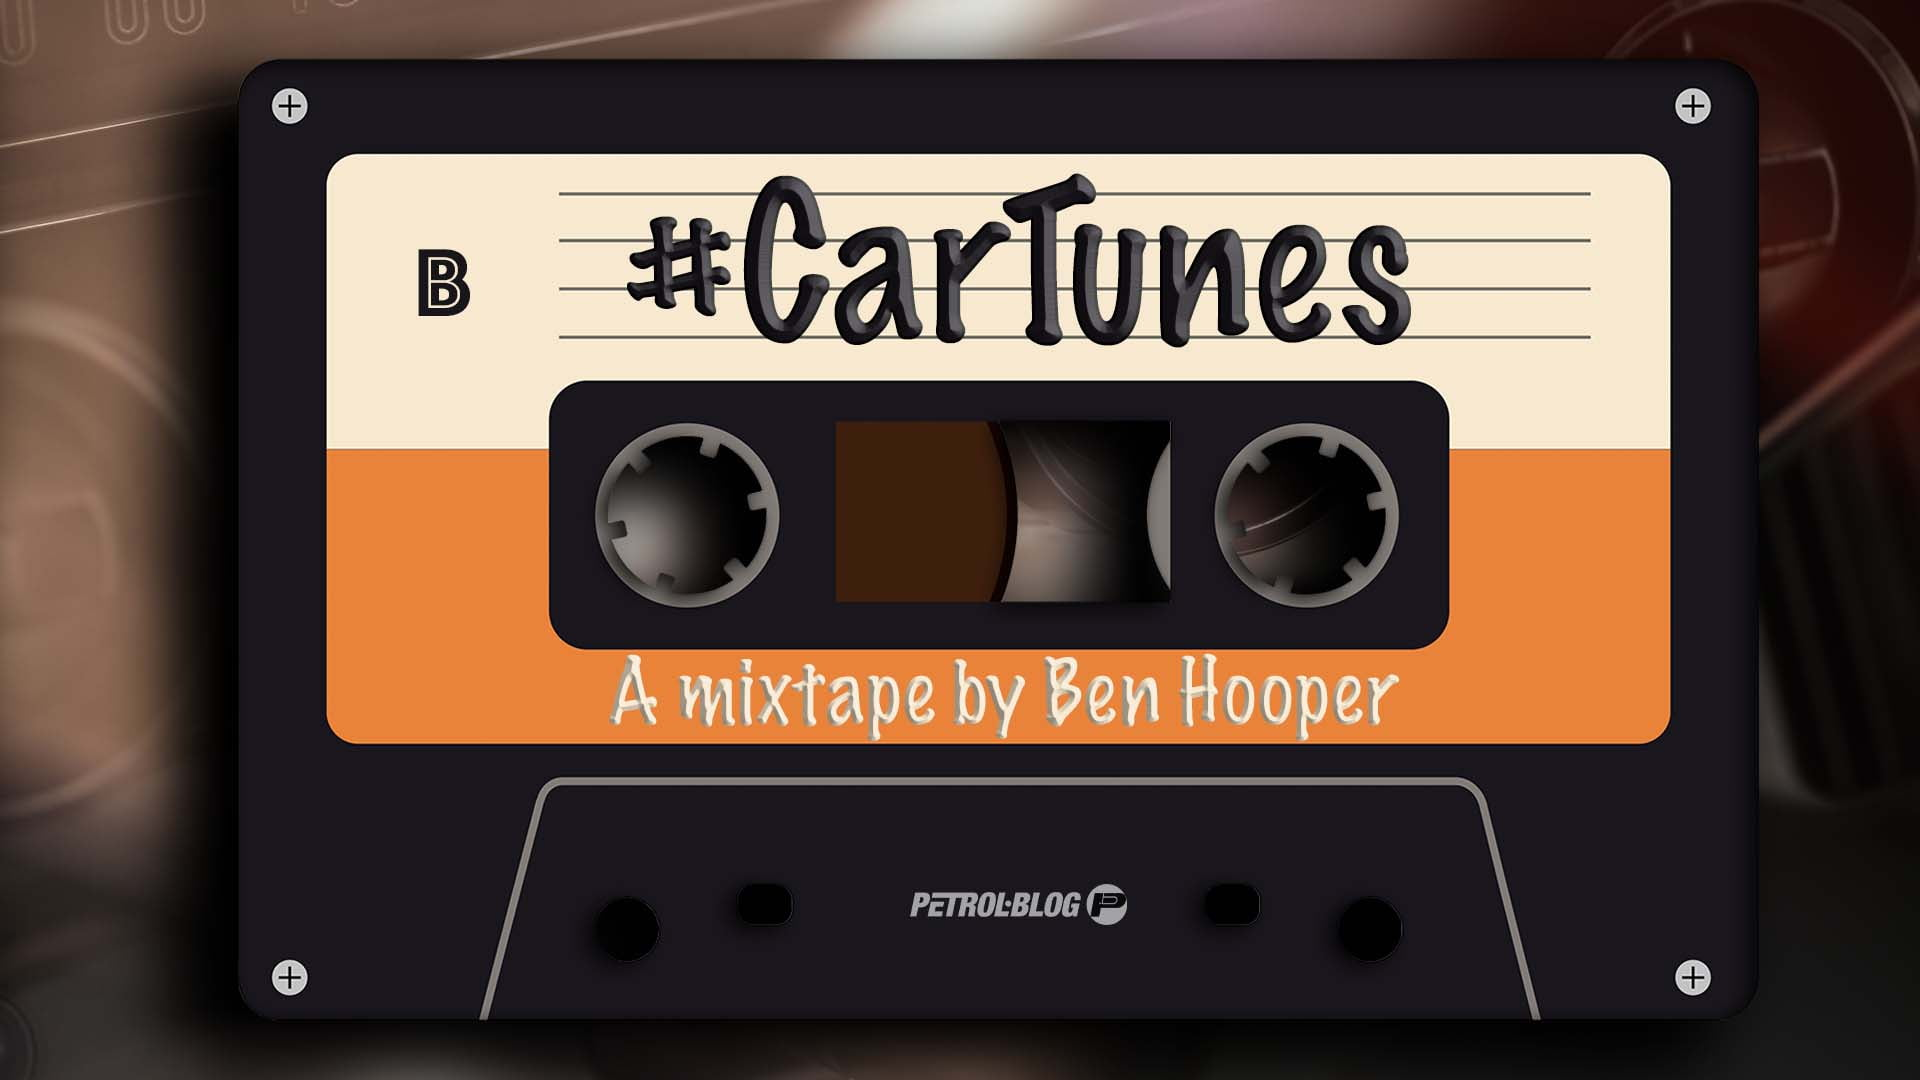 CarTunes by Ben Hooper